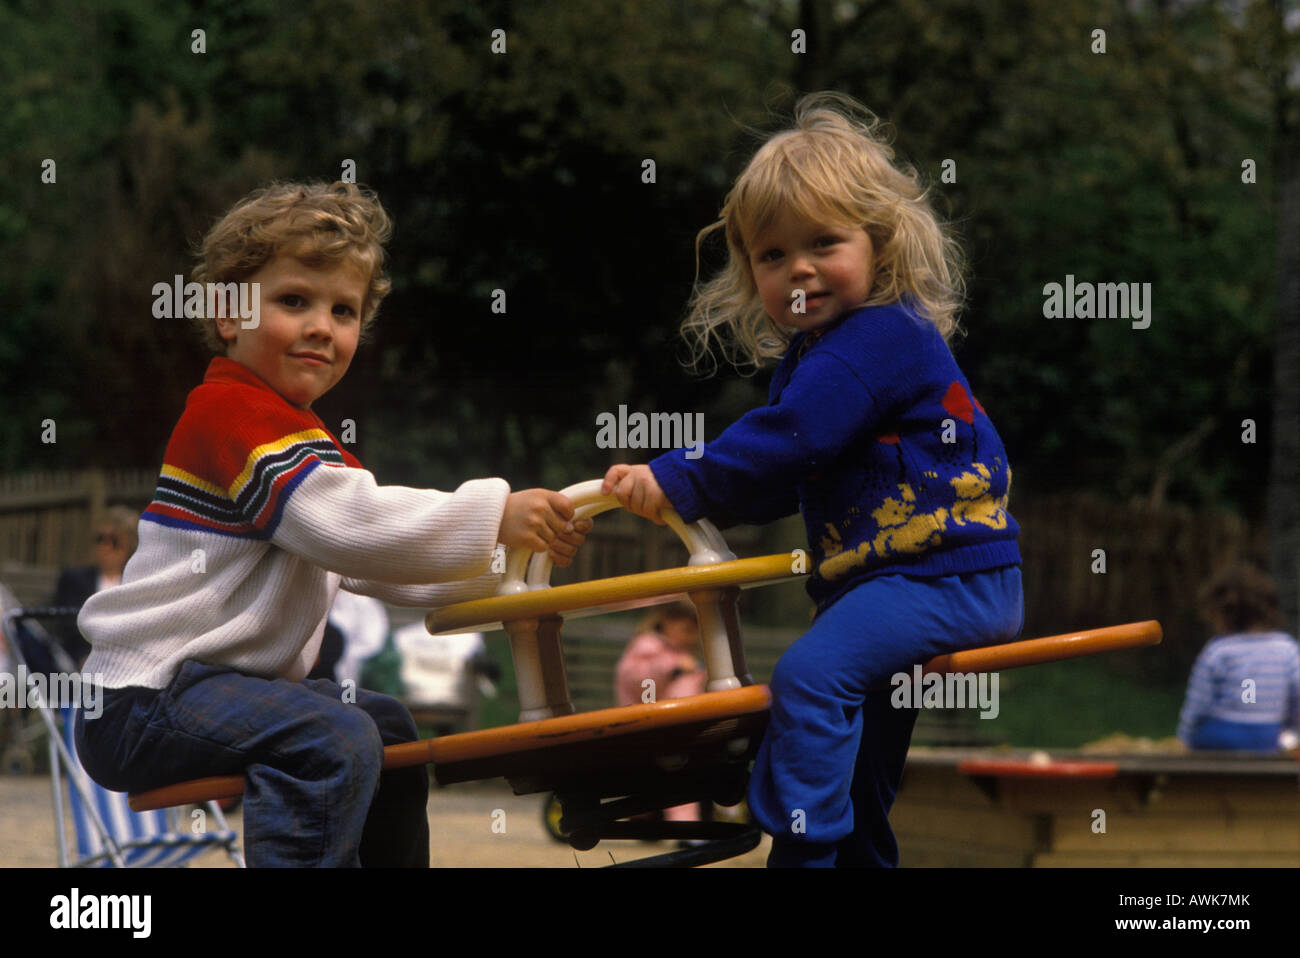 young children on see saw in playground Stock Photo